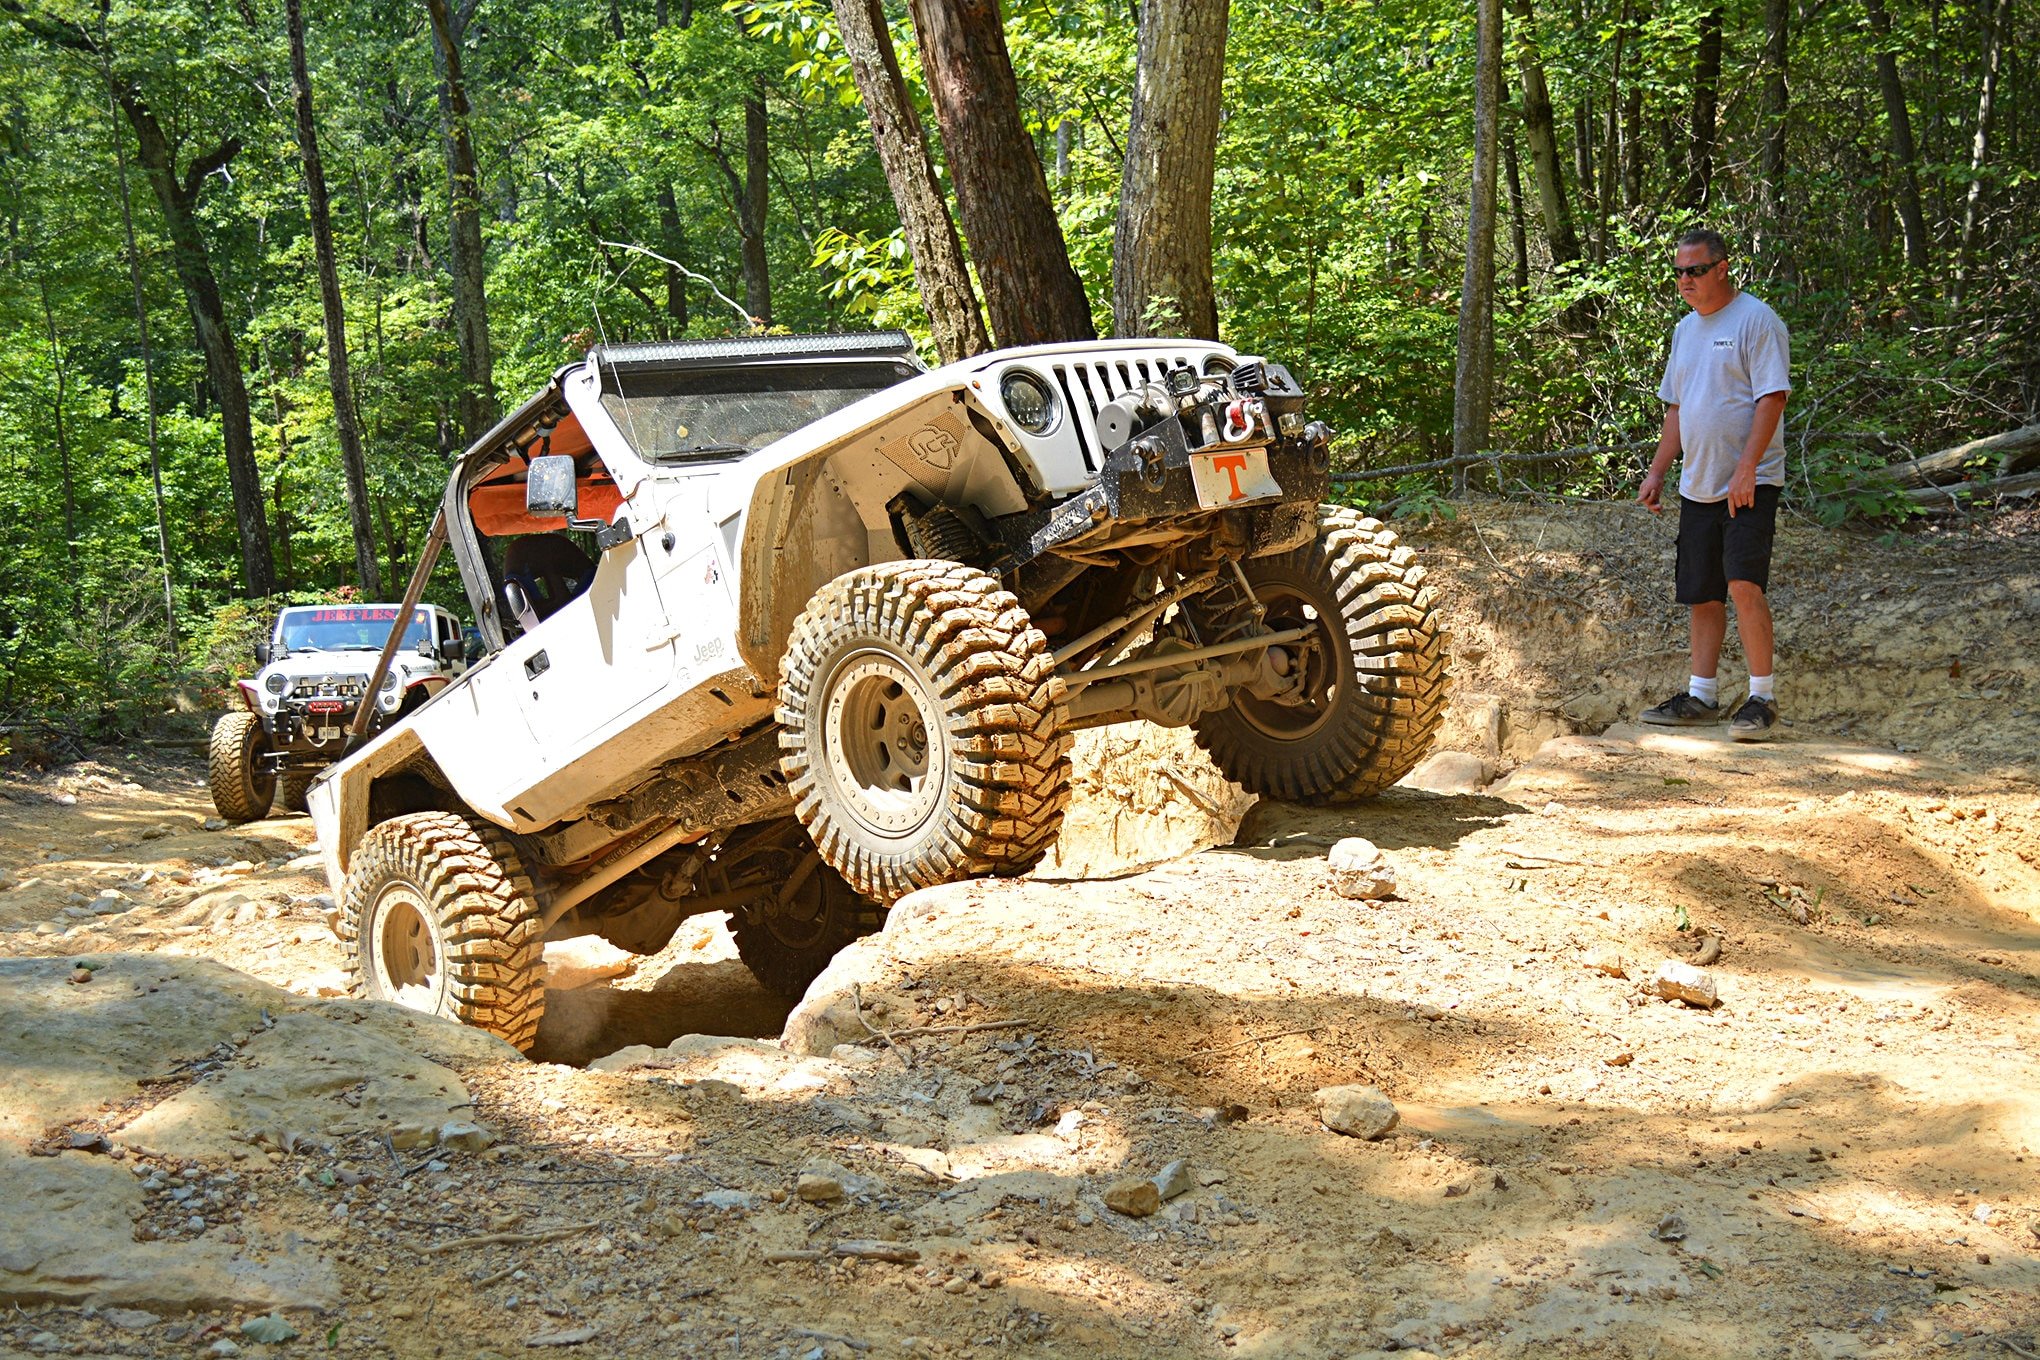 While not needed on all trails, lockers are beneficial for those taking the more difficult lines. Mark Hendrix handled this ledge easily in his 2006 LJ Rubicon.